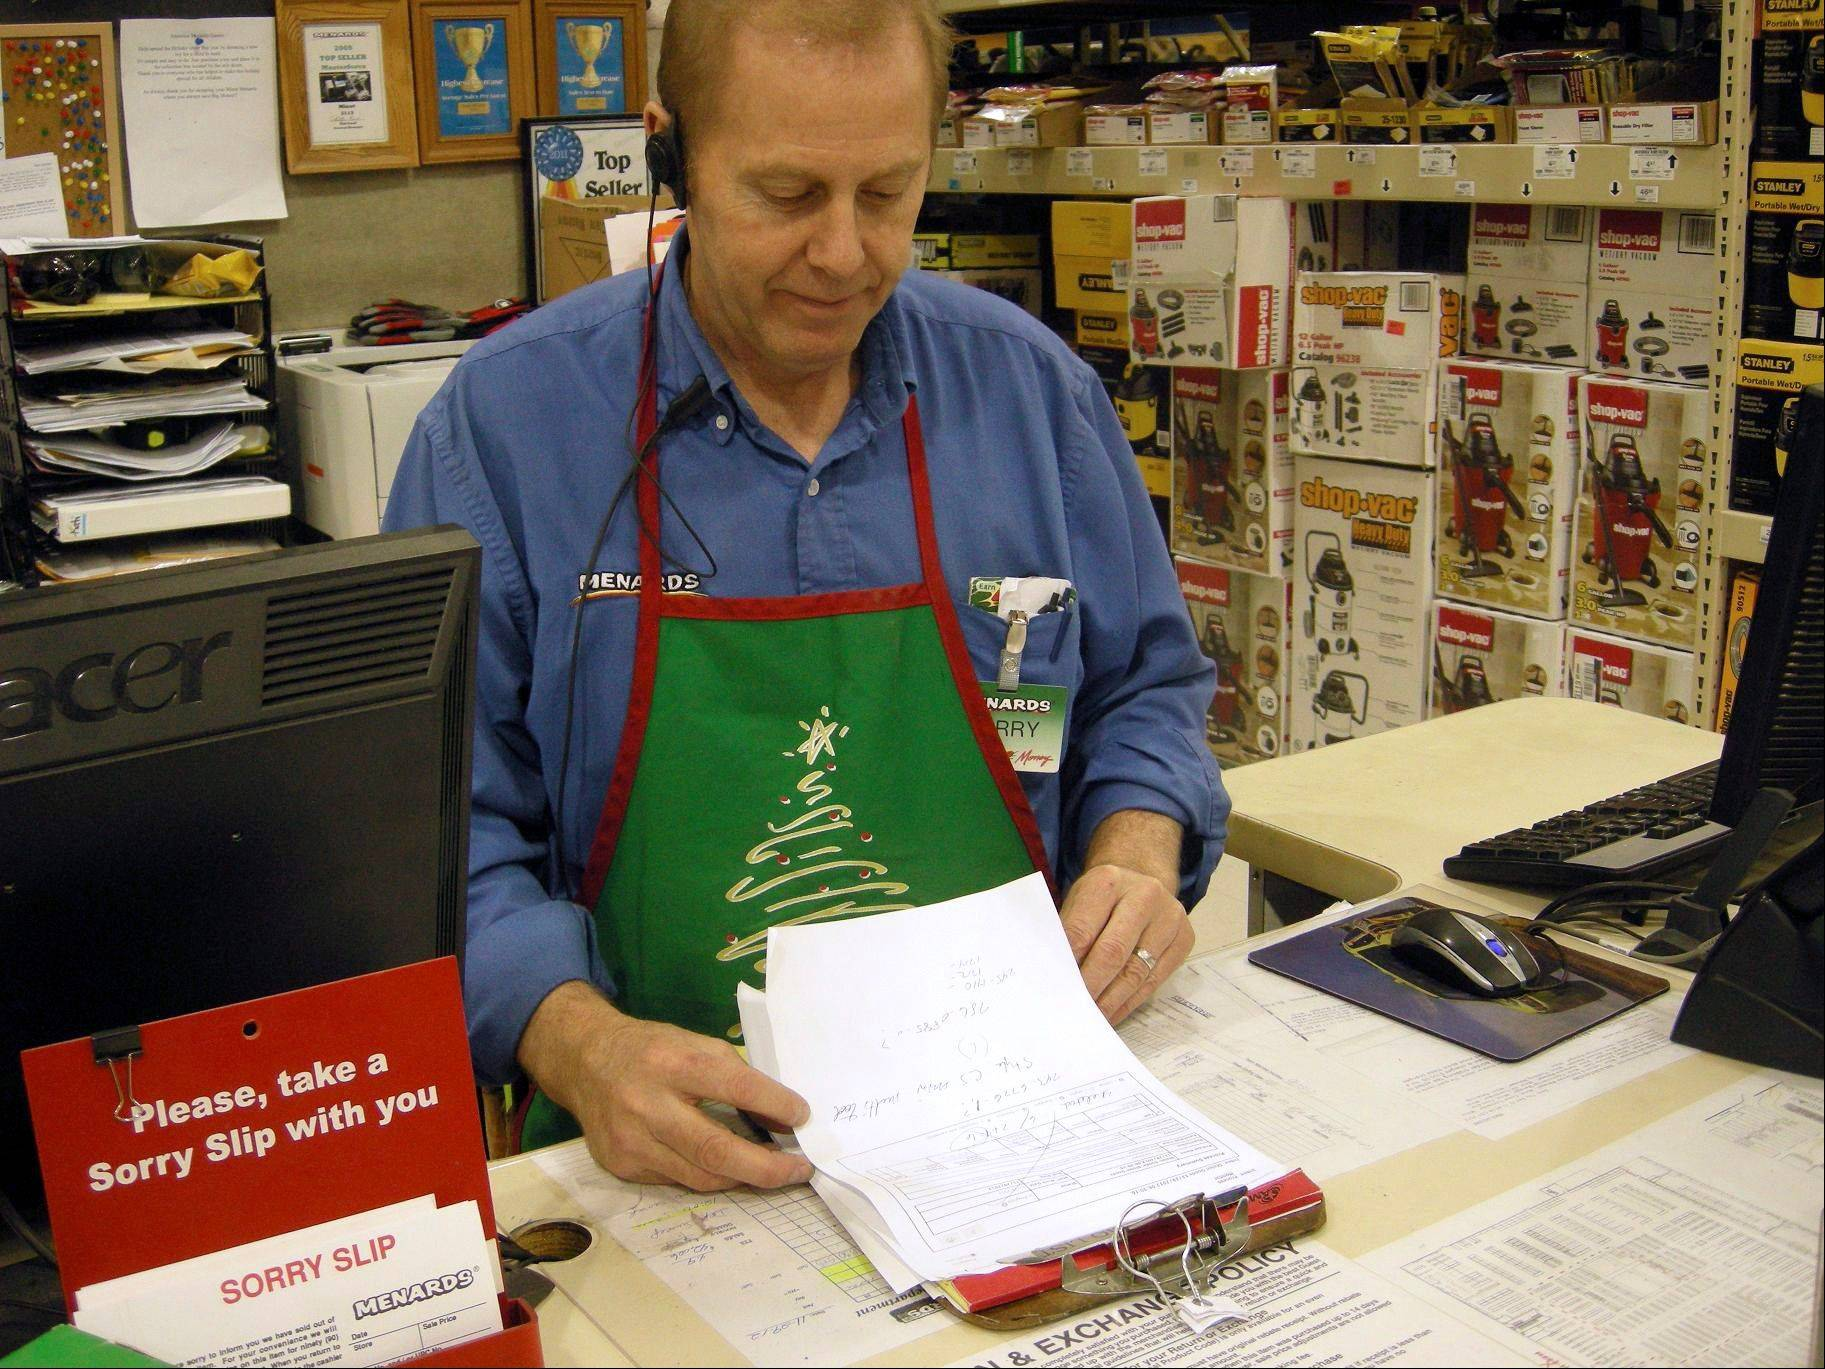 Larry Boutilier, hardware manager, who has been with the Minot, N.D. Menards since 1996, looks over paperwork at the storey in Thursday. The home improvement retailer says it will hire workers from its home base in Wisconsin and fly them to North Dakota to staff a store in Minot, which is near the state�s booming oil patch and has more jobs than takers.